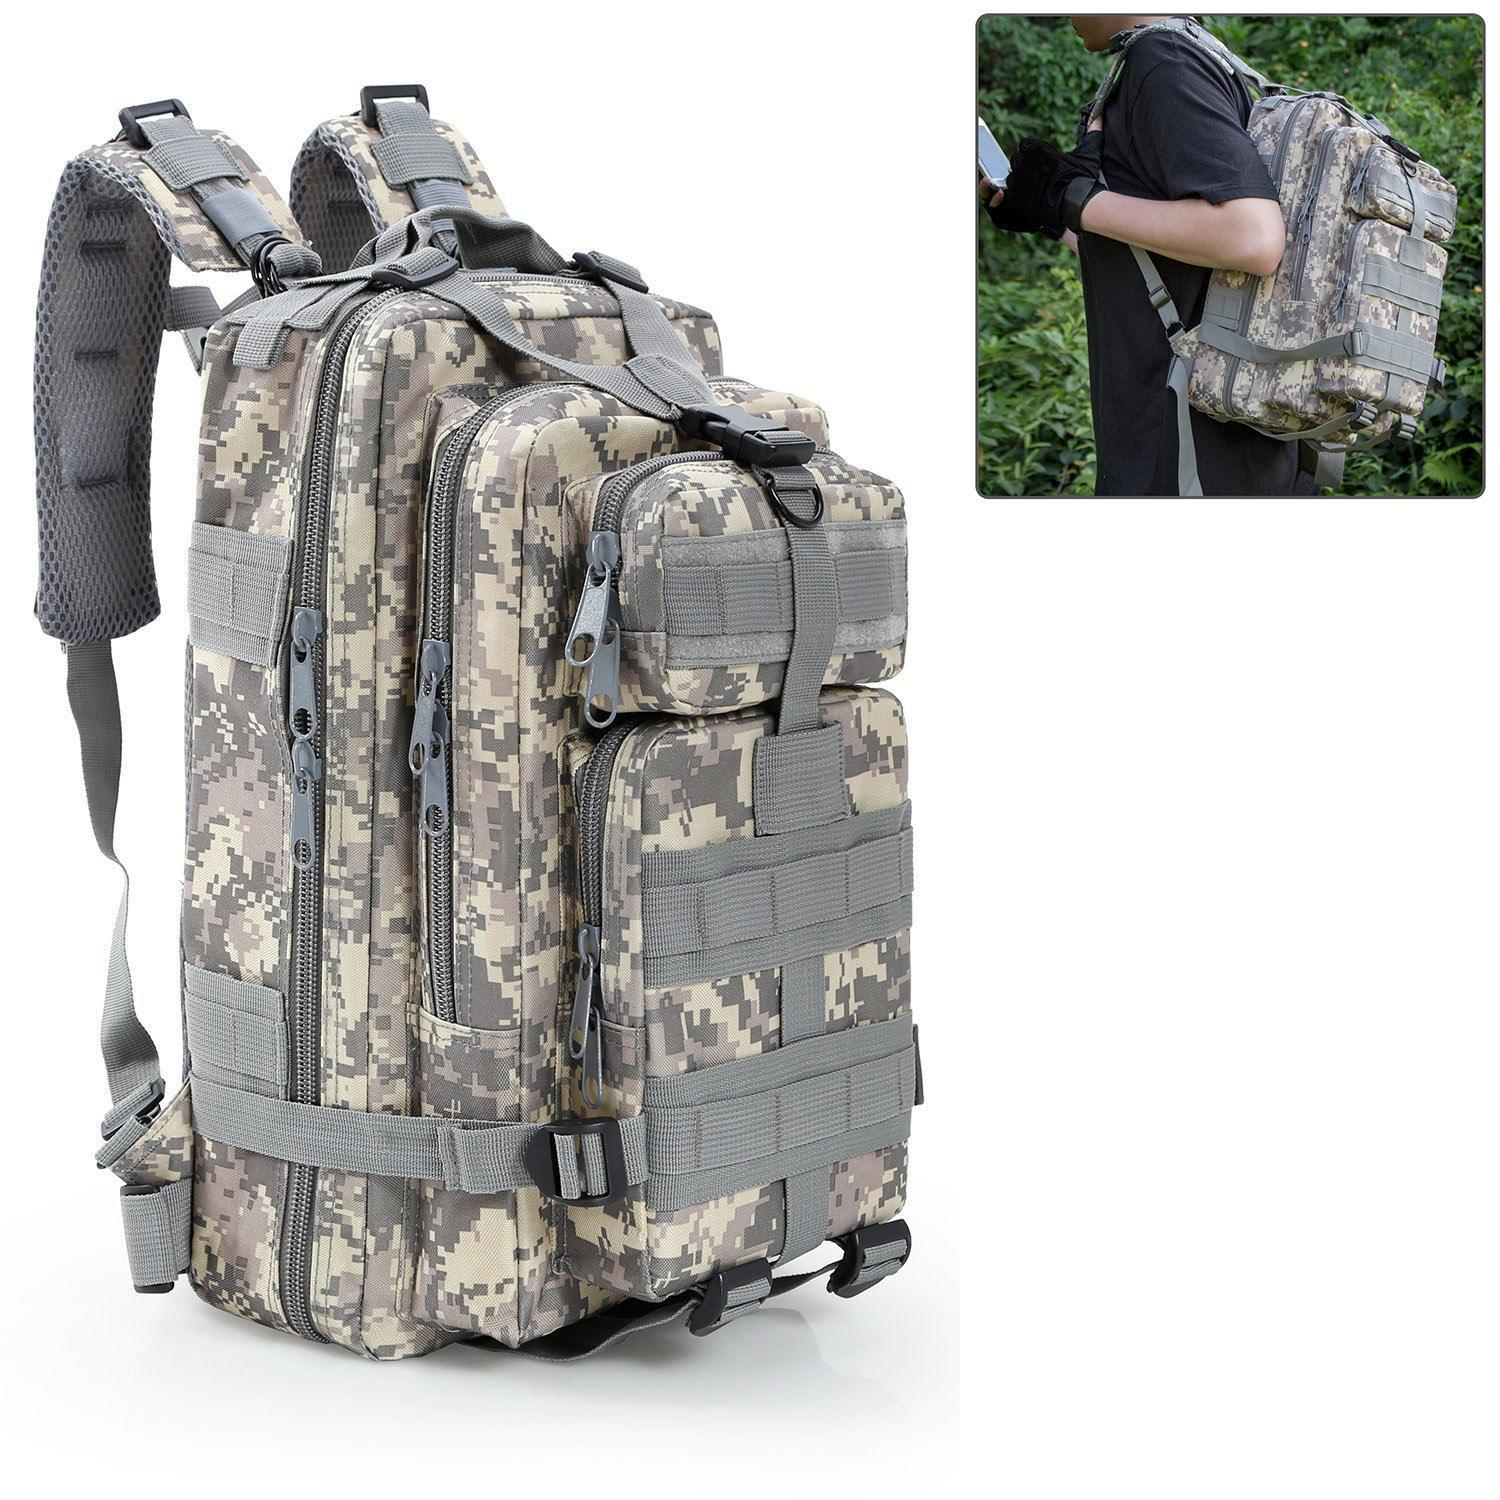 3P Tactical Outdoor Mountaineering Backpack Sports Camouflage Backpack Camping Hiking Trekking Climbing Travel Shoulder Bag